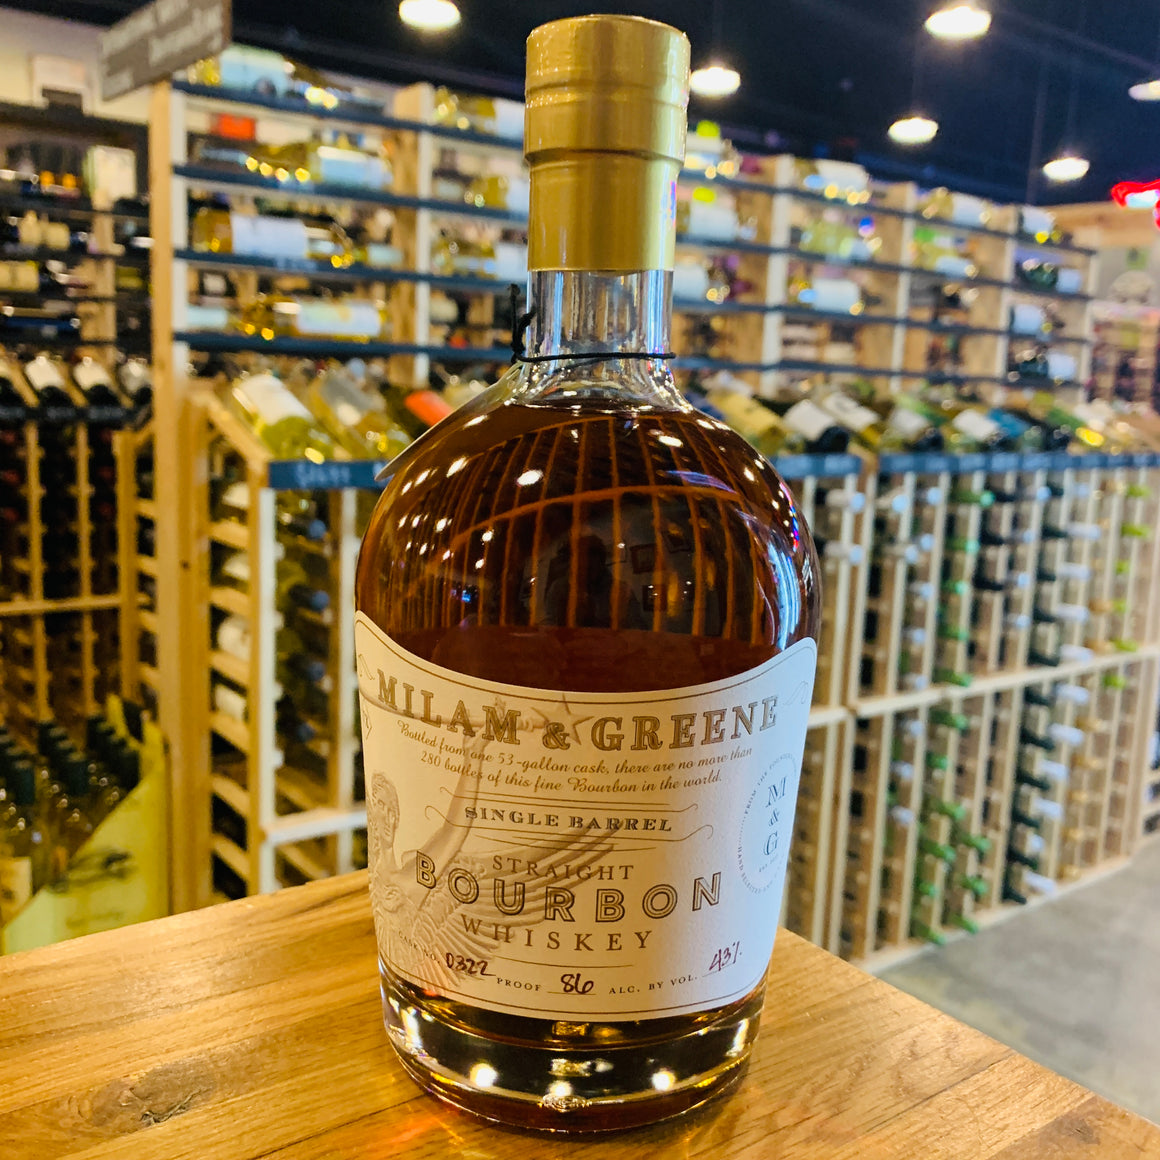 MILAM & GREENE SINGLE BARREL BOURBON 750ML